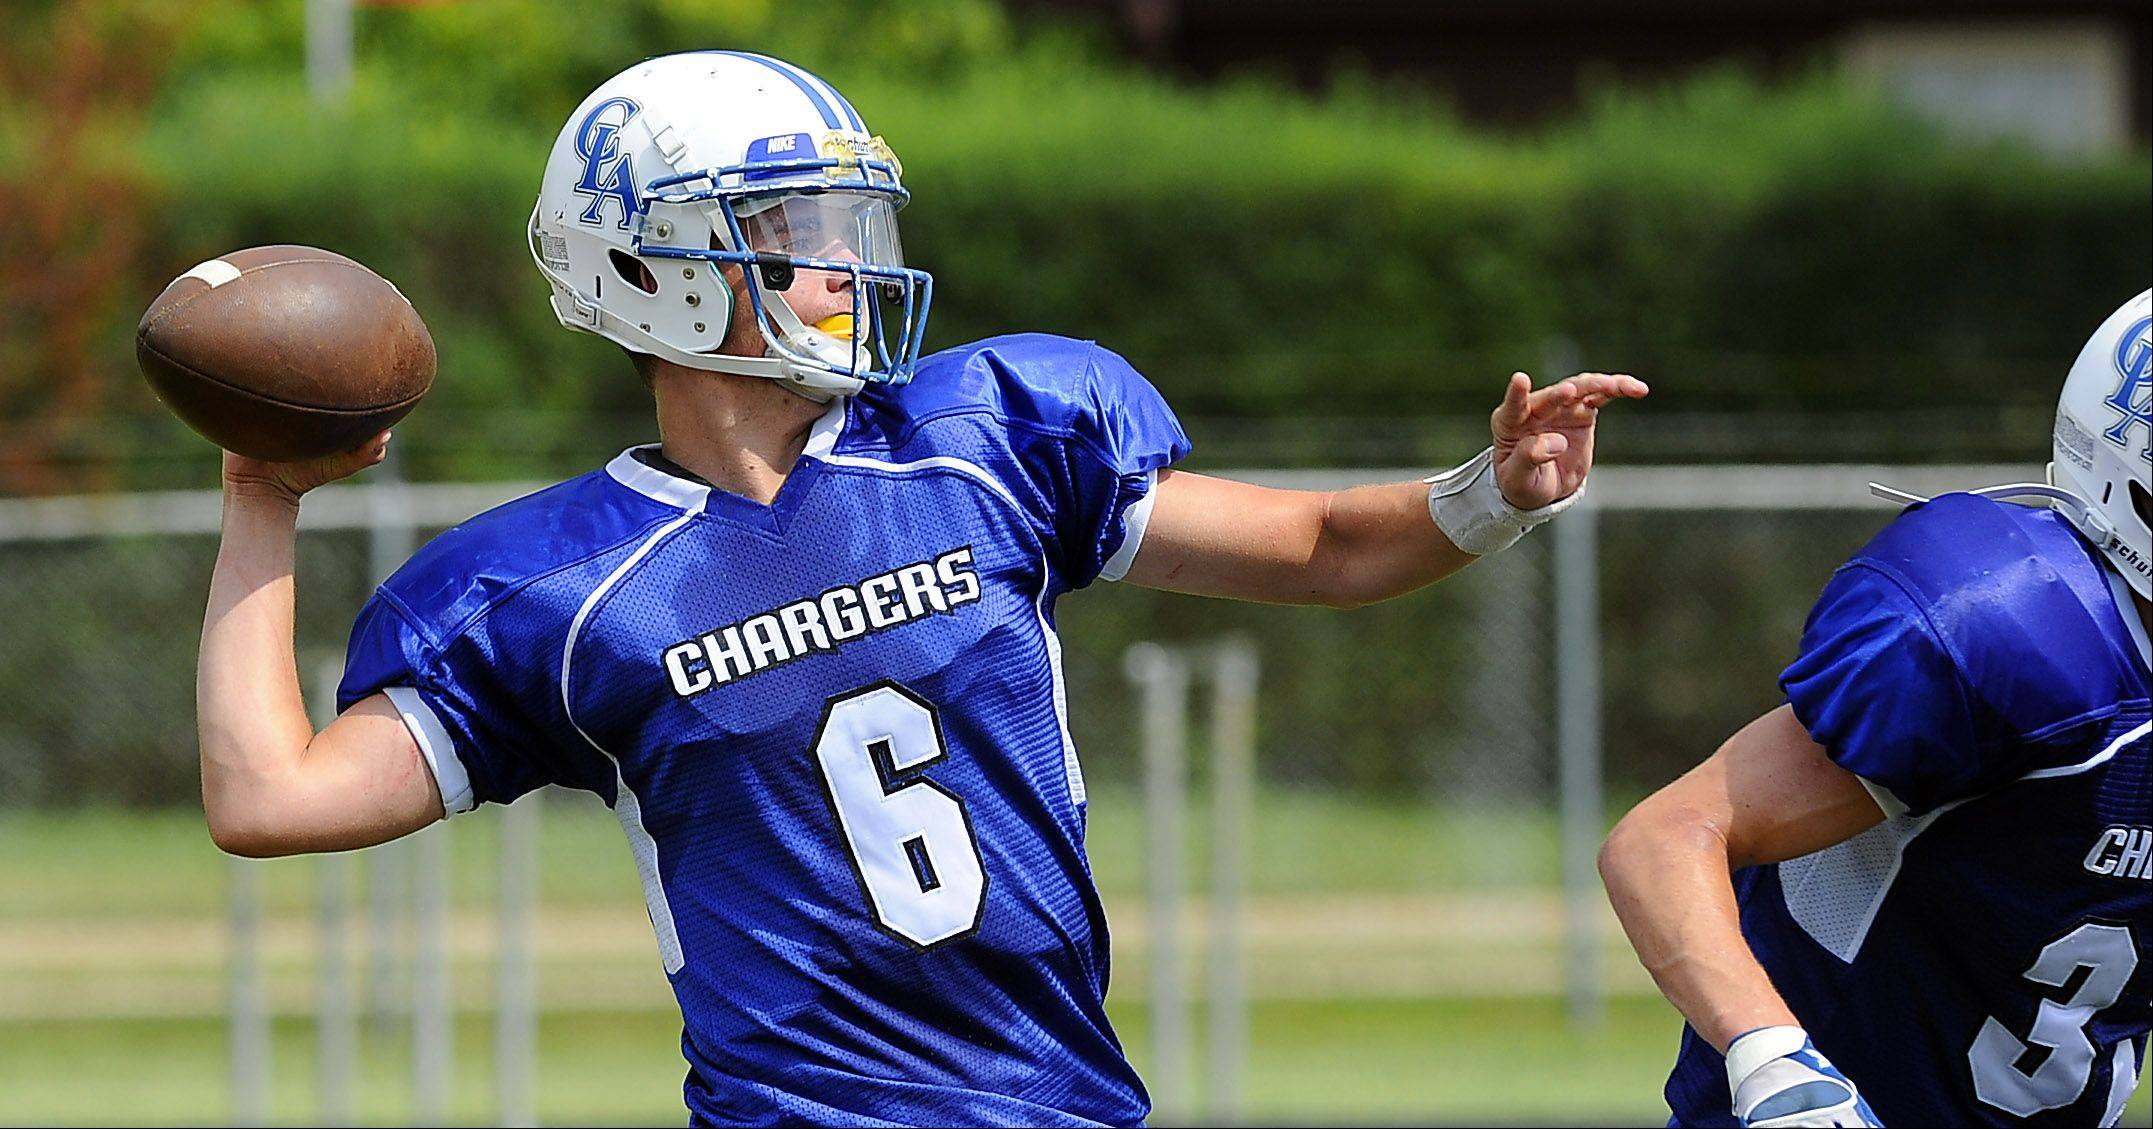 Christian Liberty quarterback Gabe Grob fires downfield against Marquette Academy on Saturday in Arlington Heights.